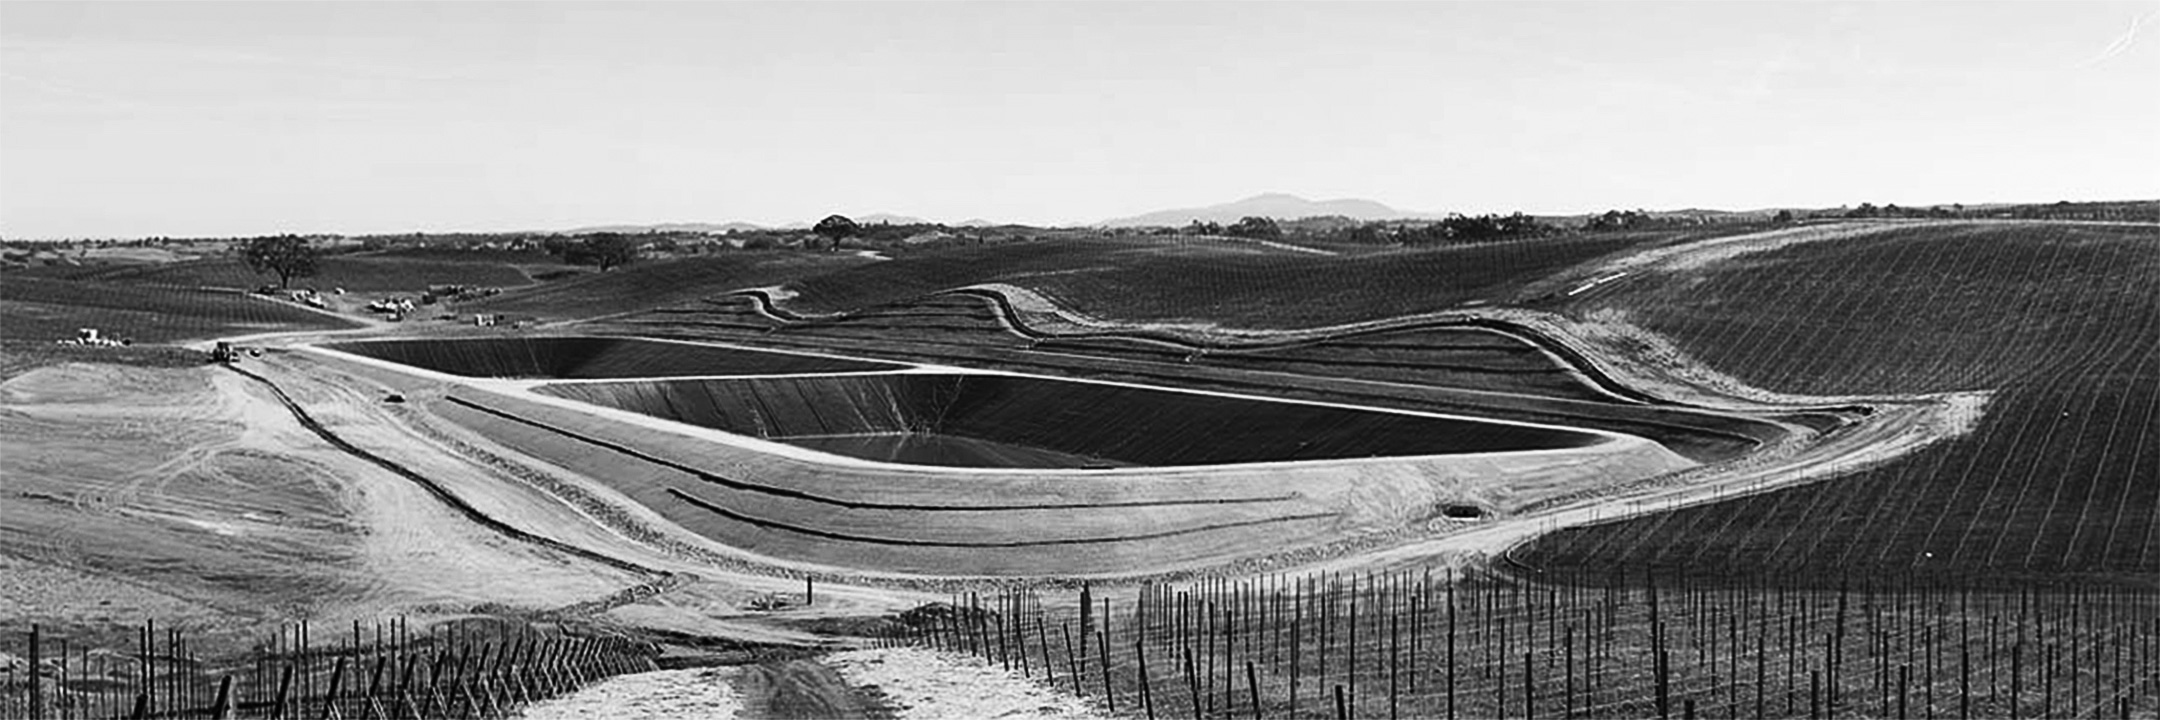 Geomembrane lining for a California vineyard